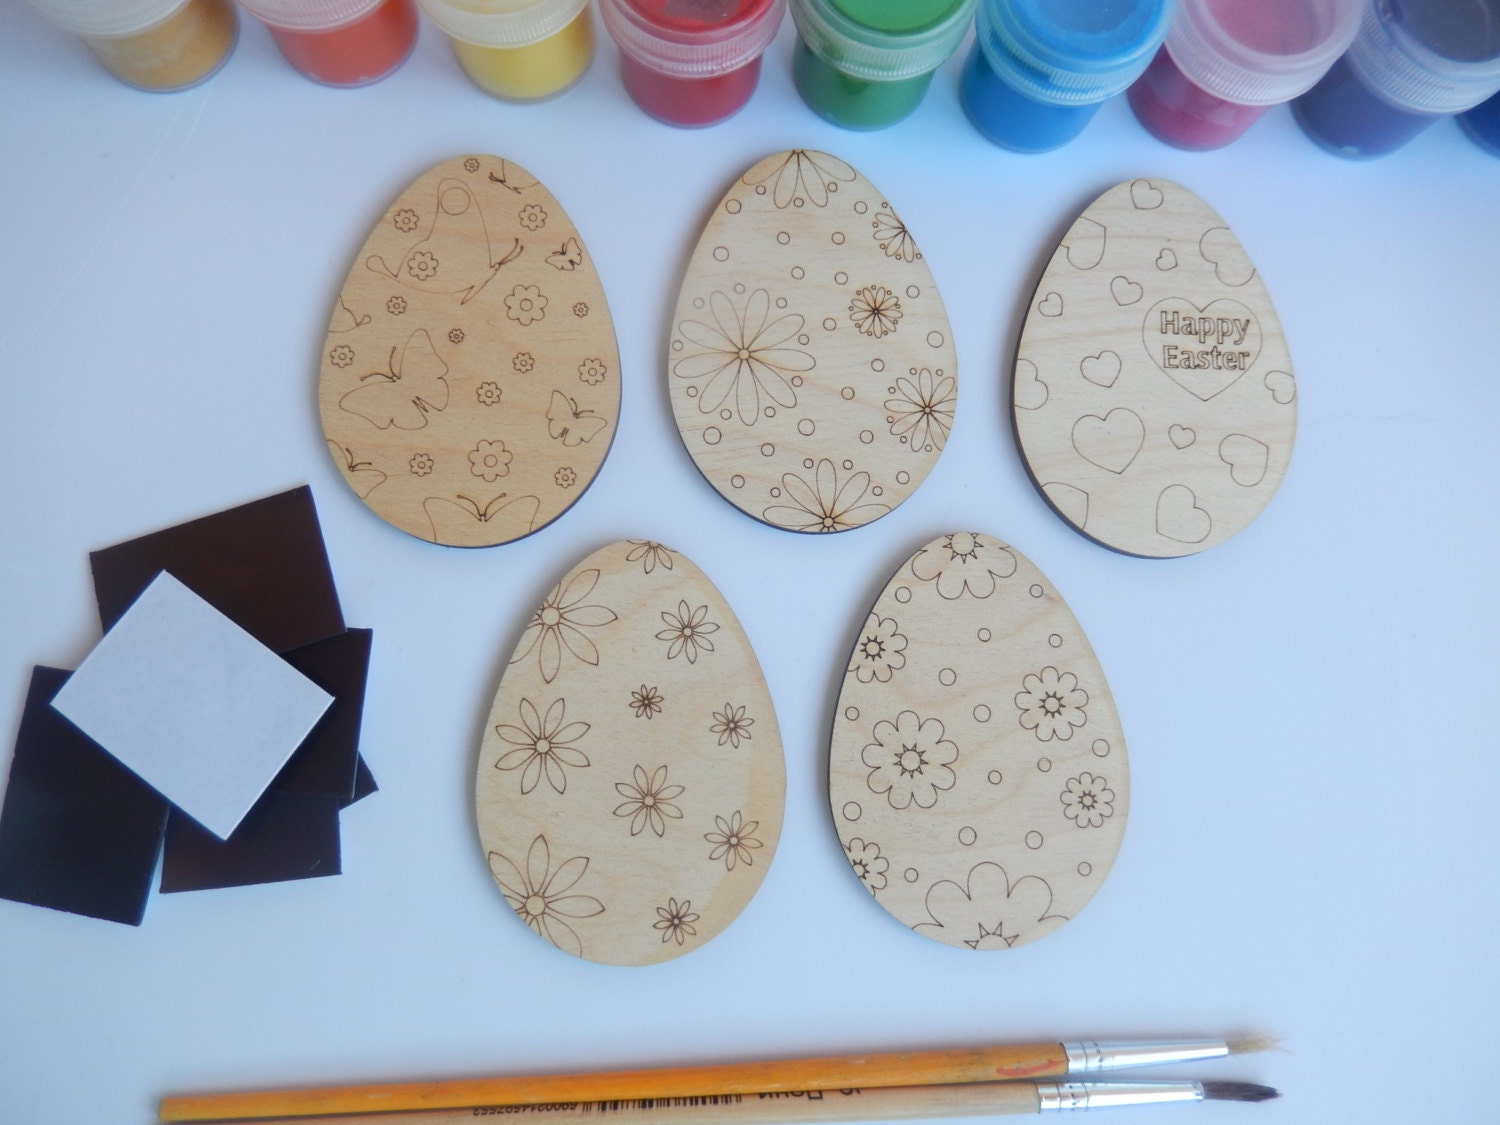 5 easter eggs for coloring easy crafts for kids and adult for What to put in easter eggs for adults